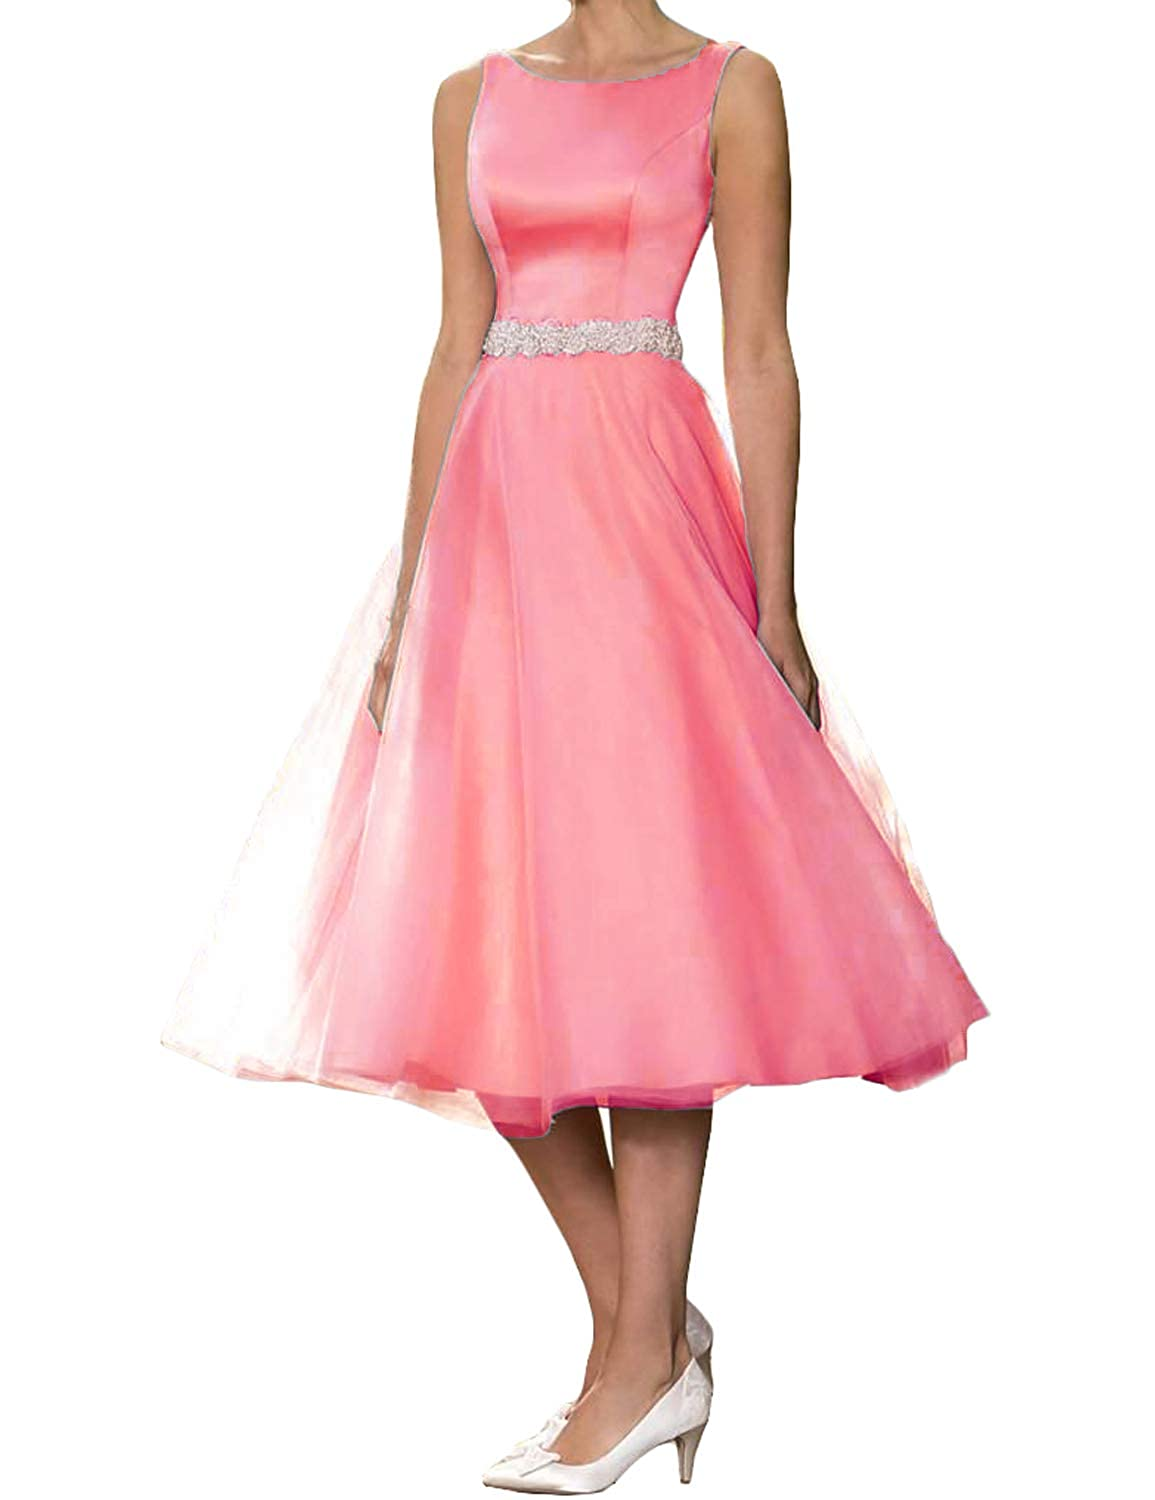 Coral CIRCLEWLD Elegant Evening Dresses for Weddings Vintage Midi Bridal Gown Plus Size E181